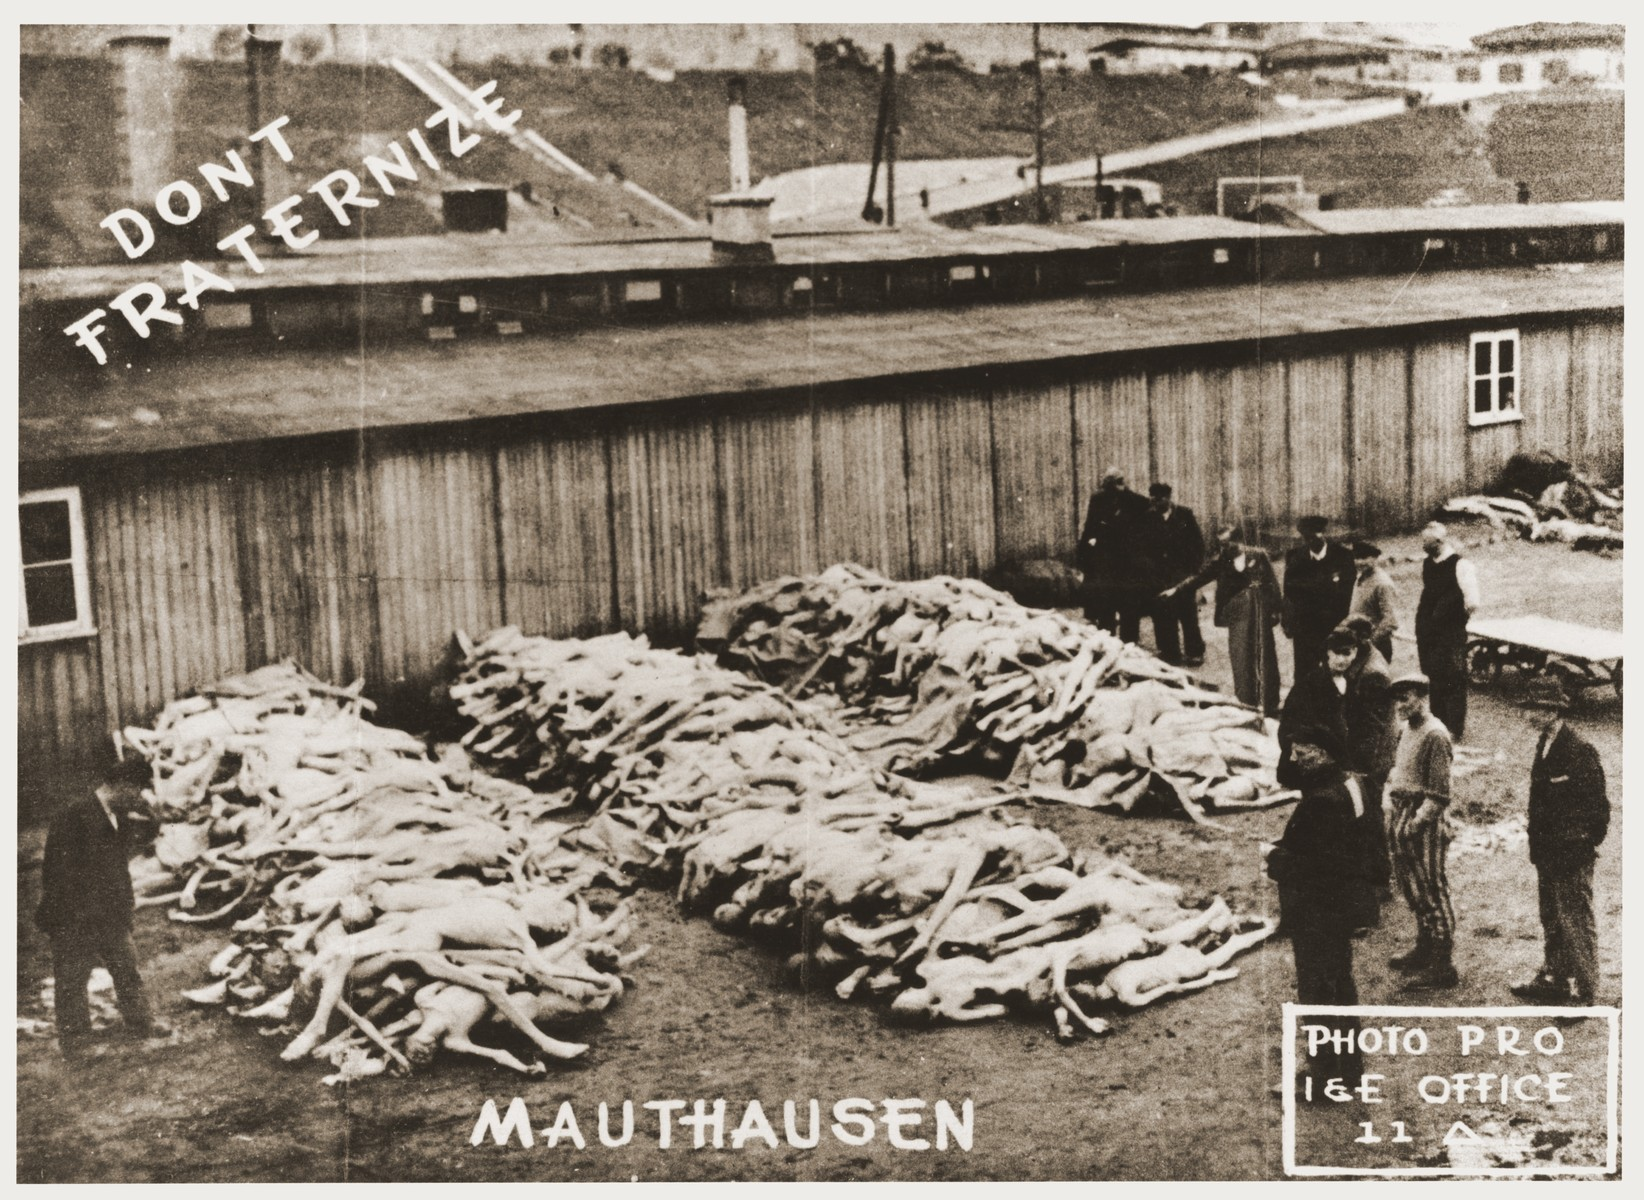 Handbill issued by the U.S. Army which uses an image of concentration camp victims at Mauthausen to remind soldiers not to fraternize with German civilians.    The donor, Donald Schaufelberger, received this handbill while serving with the 11th Armored Division of the U.S. Third Army.